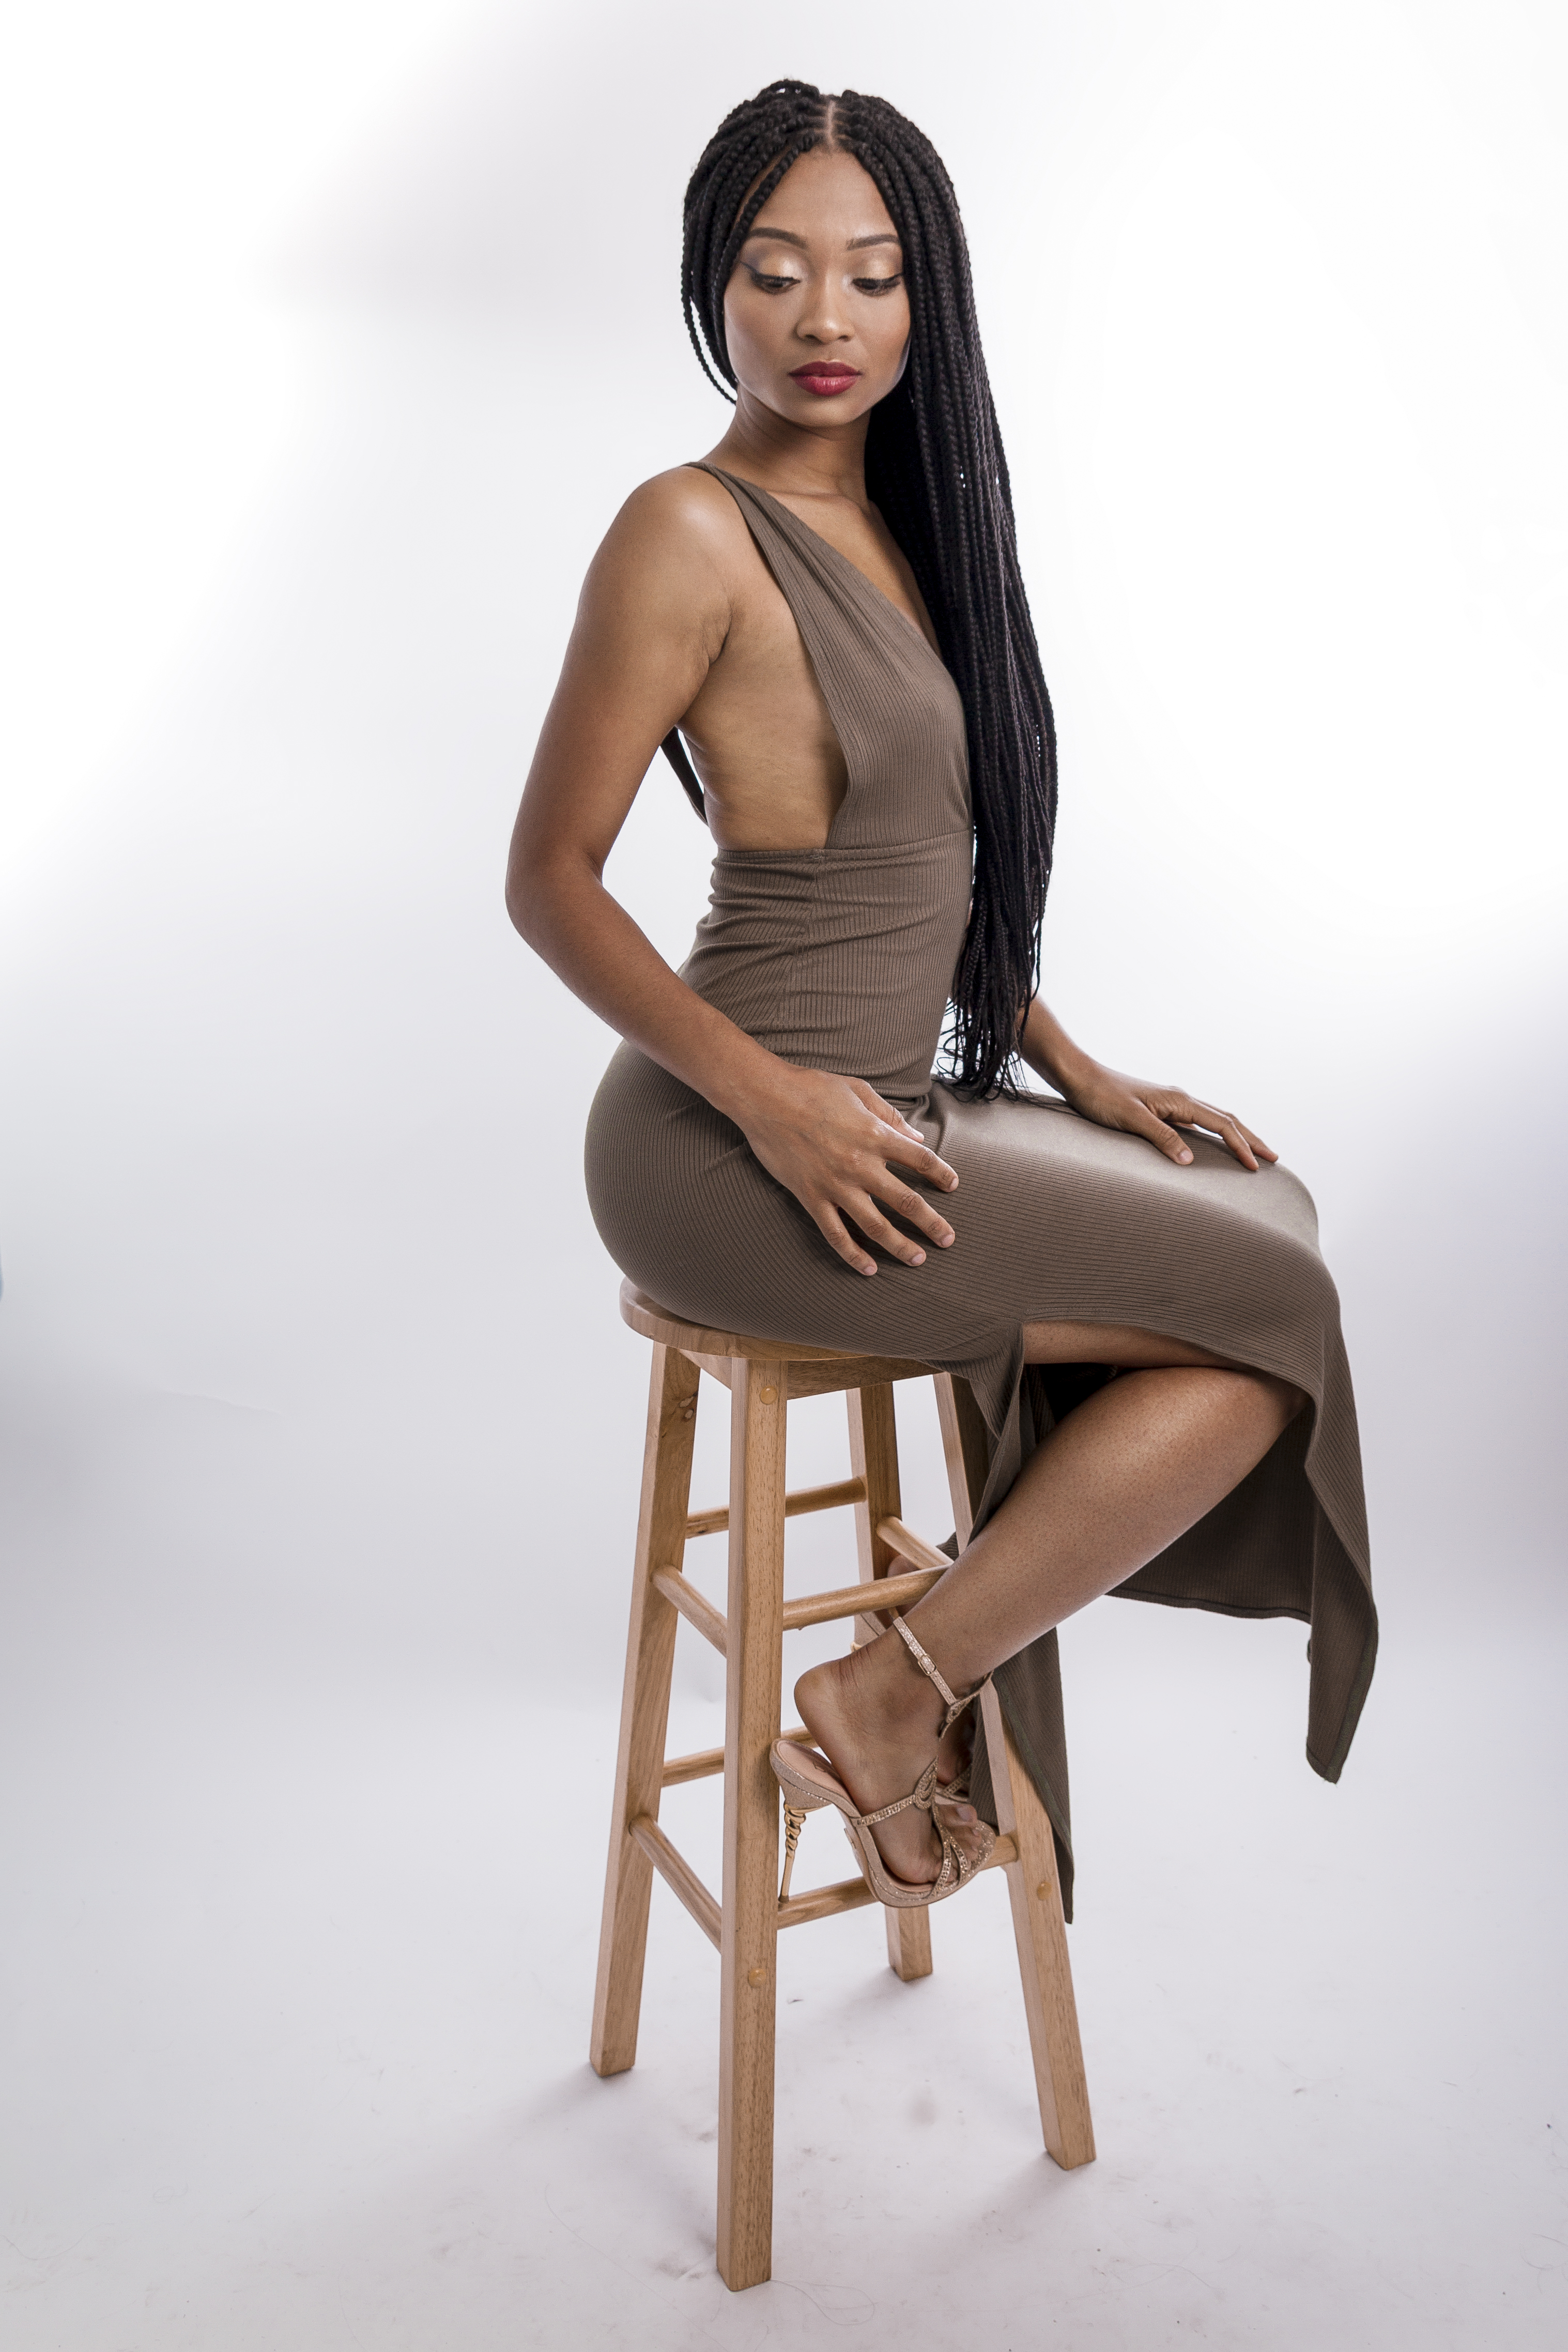 Photo of Woman Wearing Brown Dress While Sitting on Stool